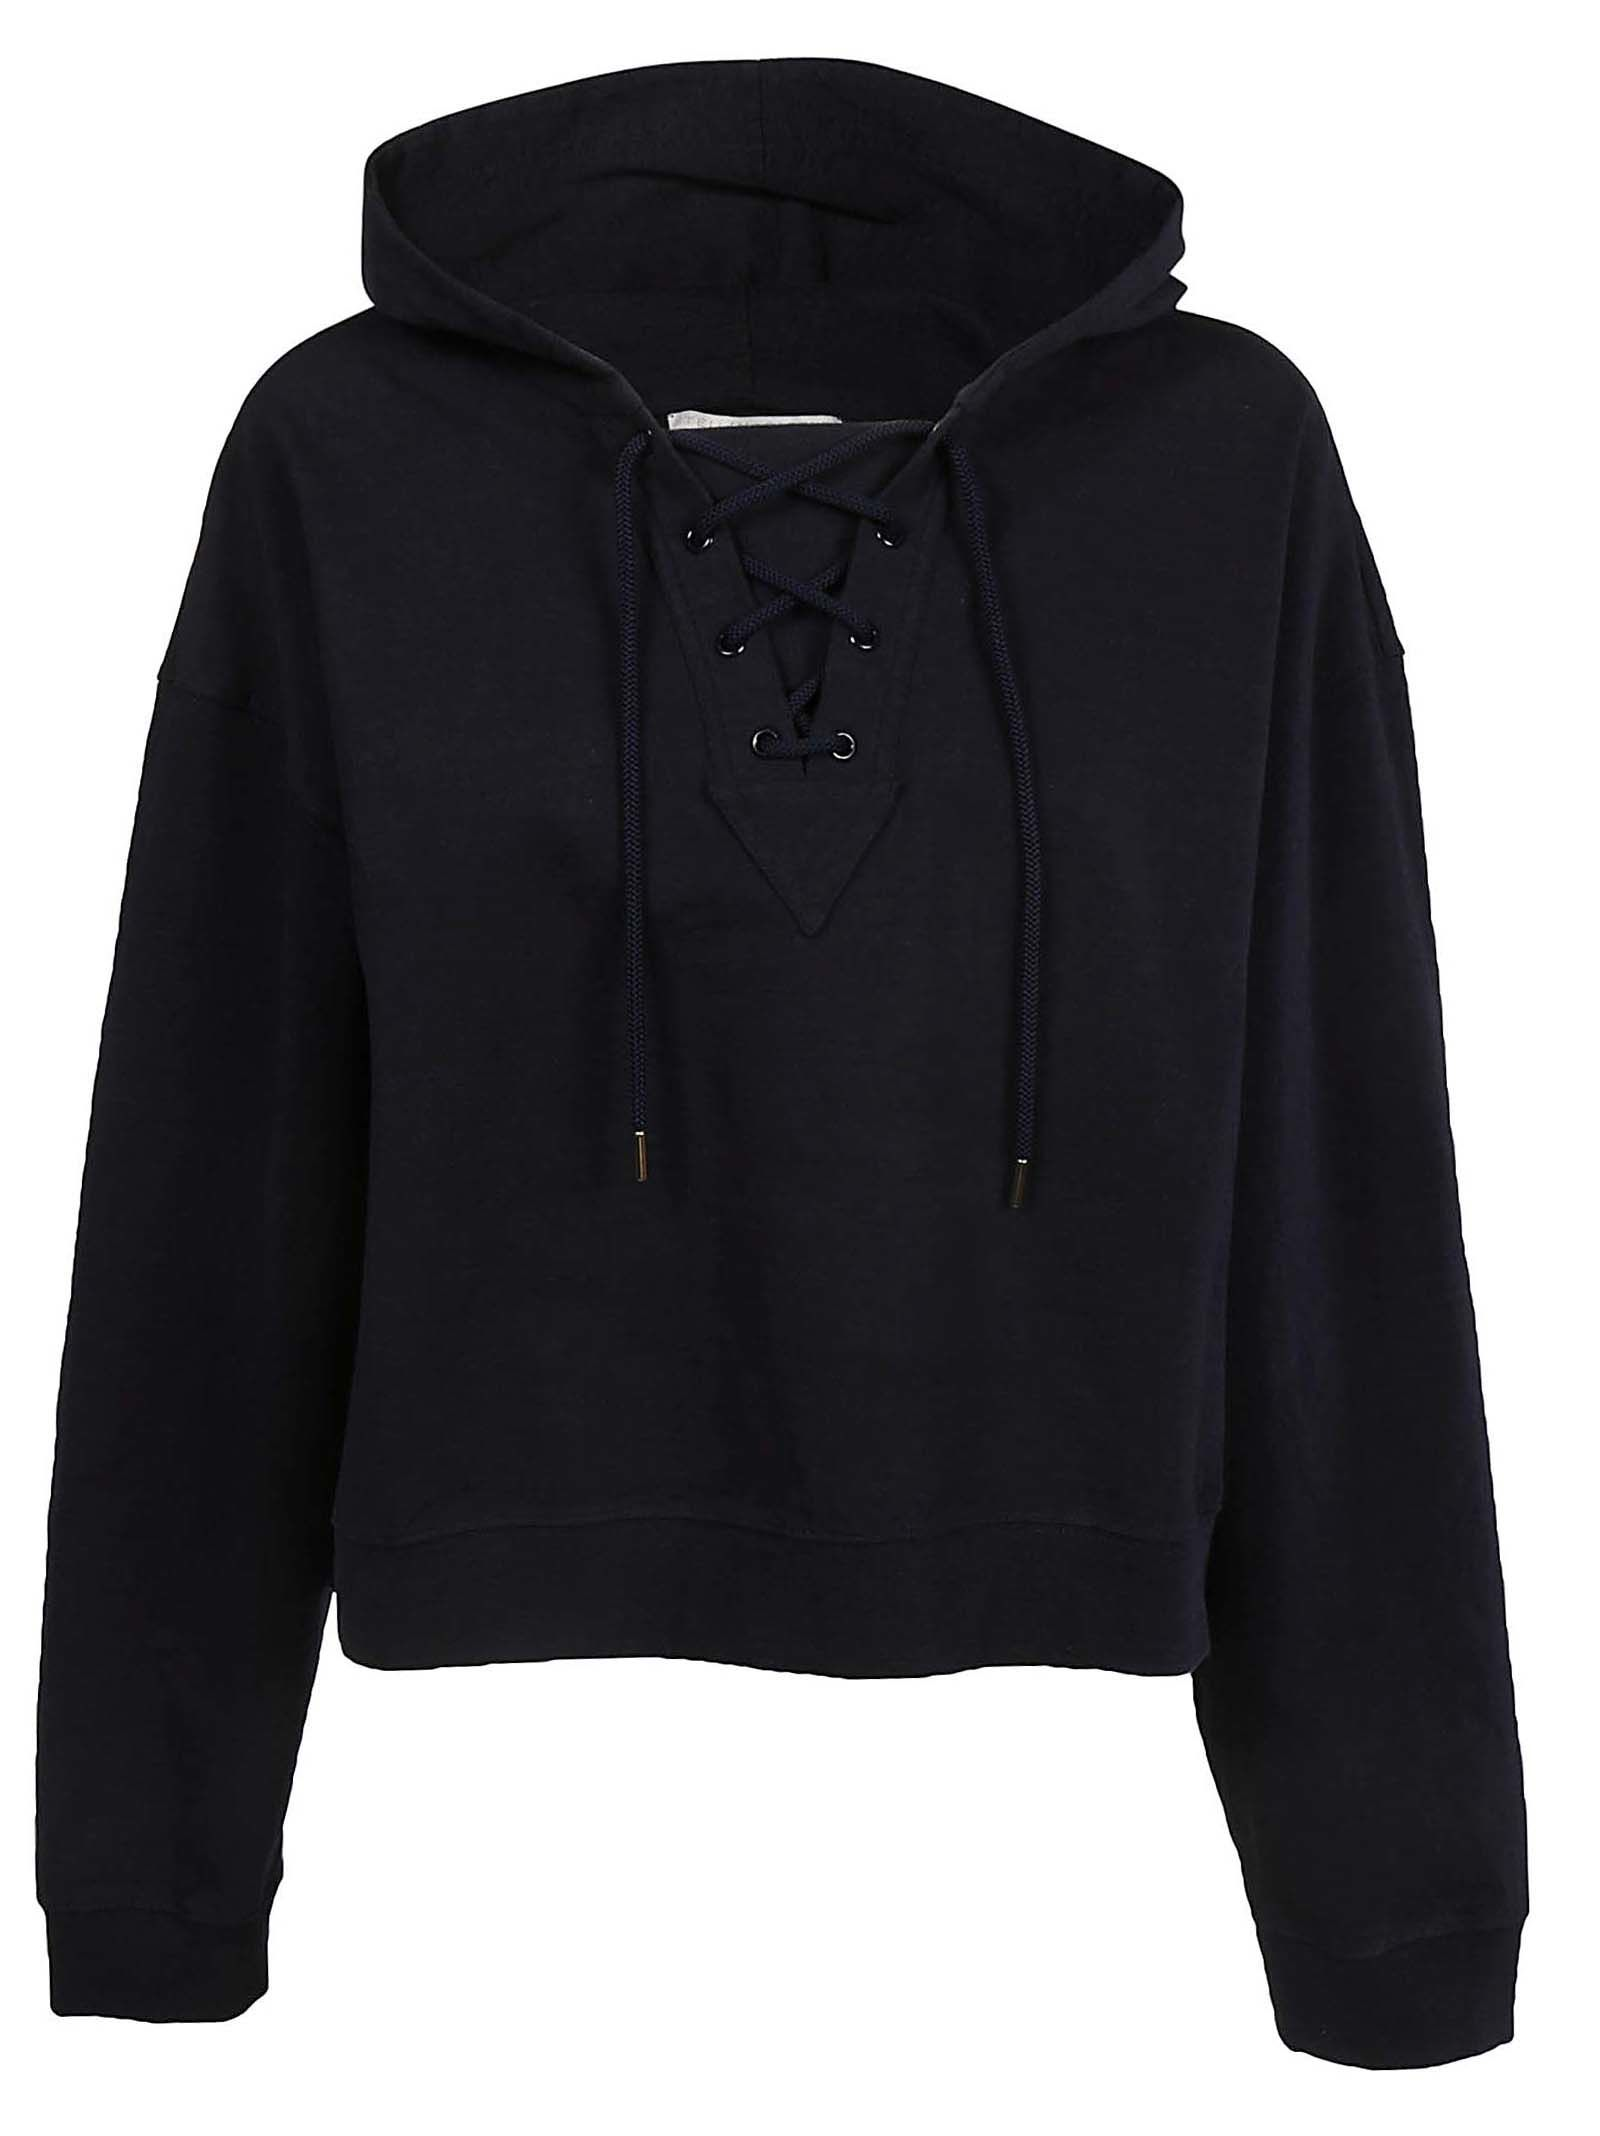 REAR LOGO CROPPED HOODIE from Italist.com